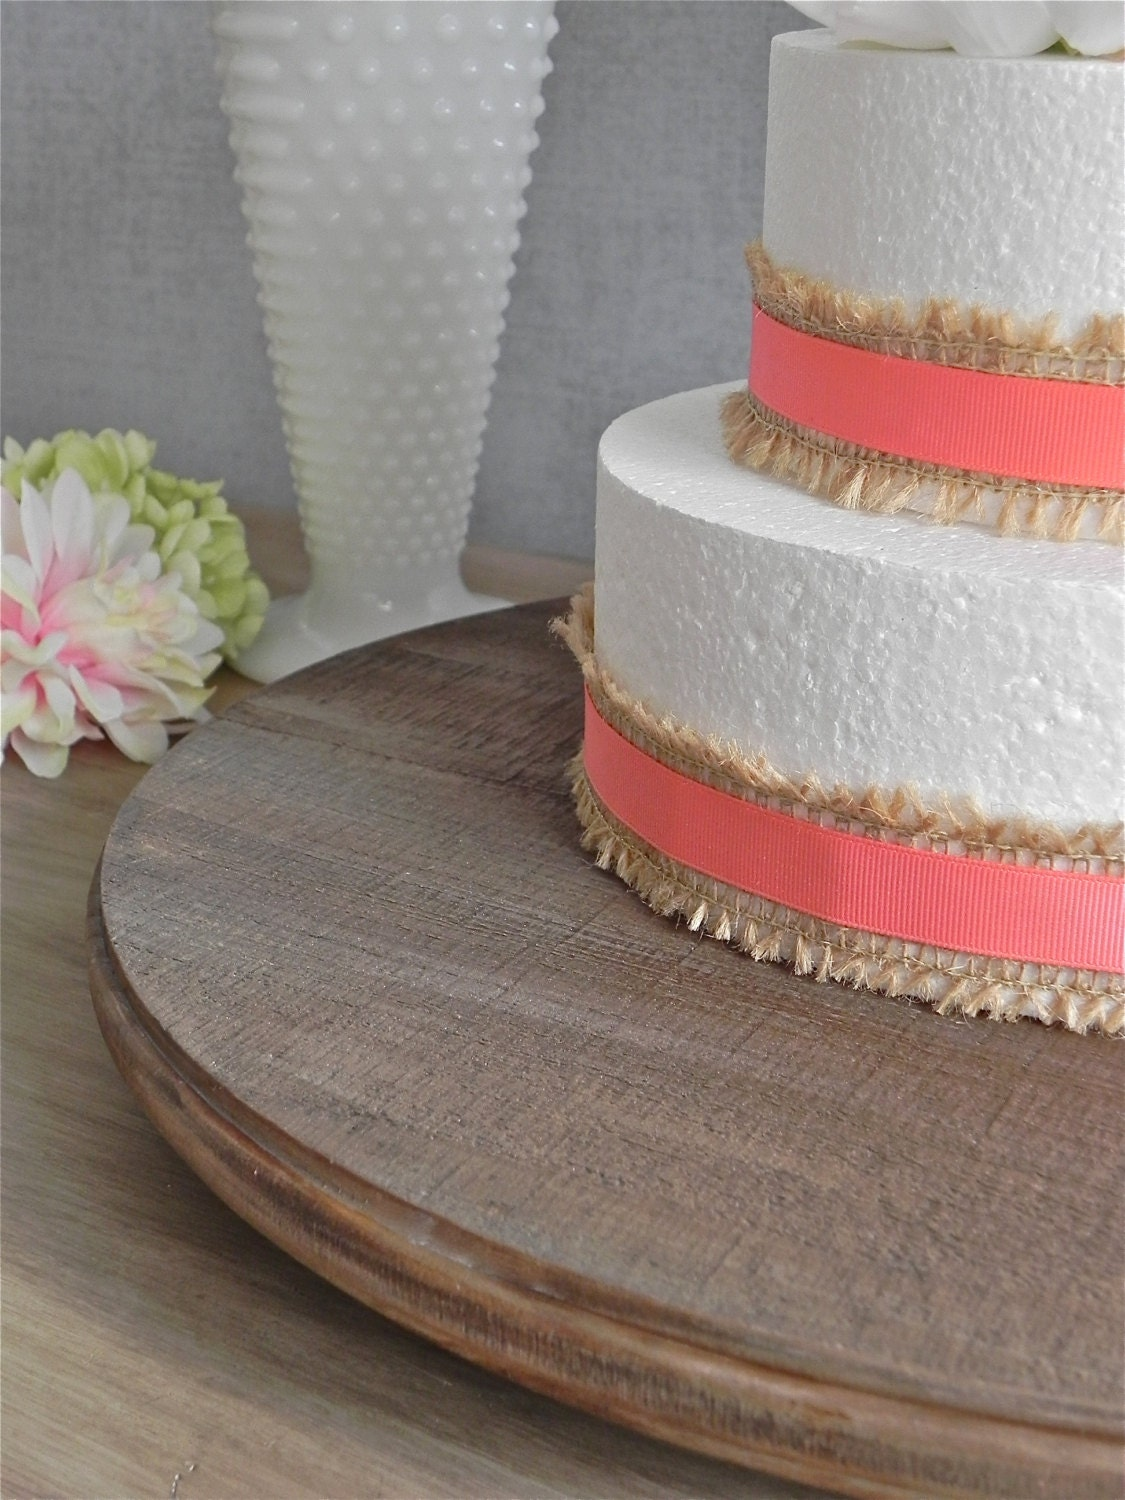 wedding cake trays 16 wedding cake stand rustic country wooden barn 26699